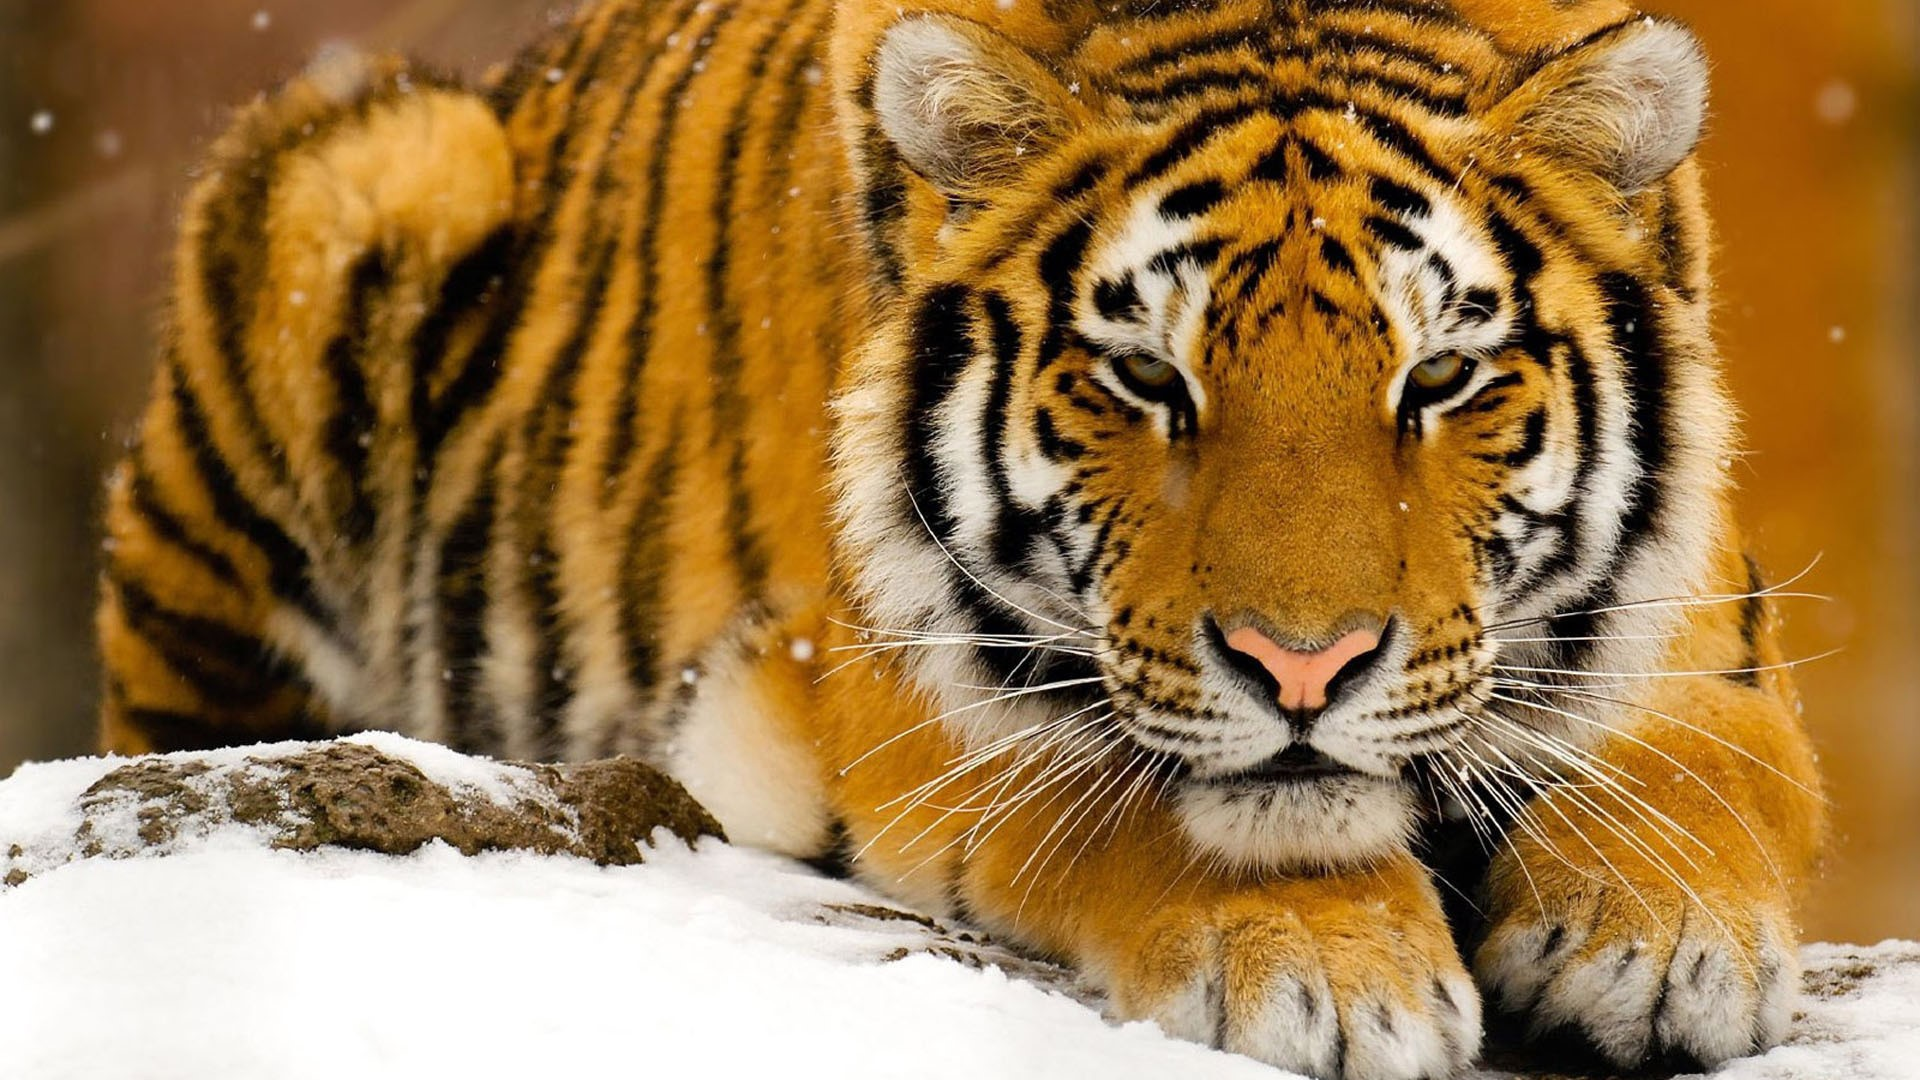 Tiger Wallpapers 4